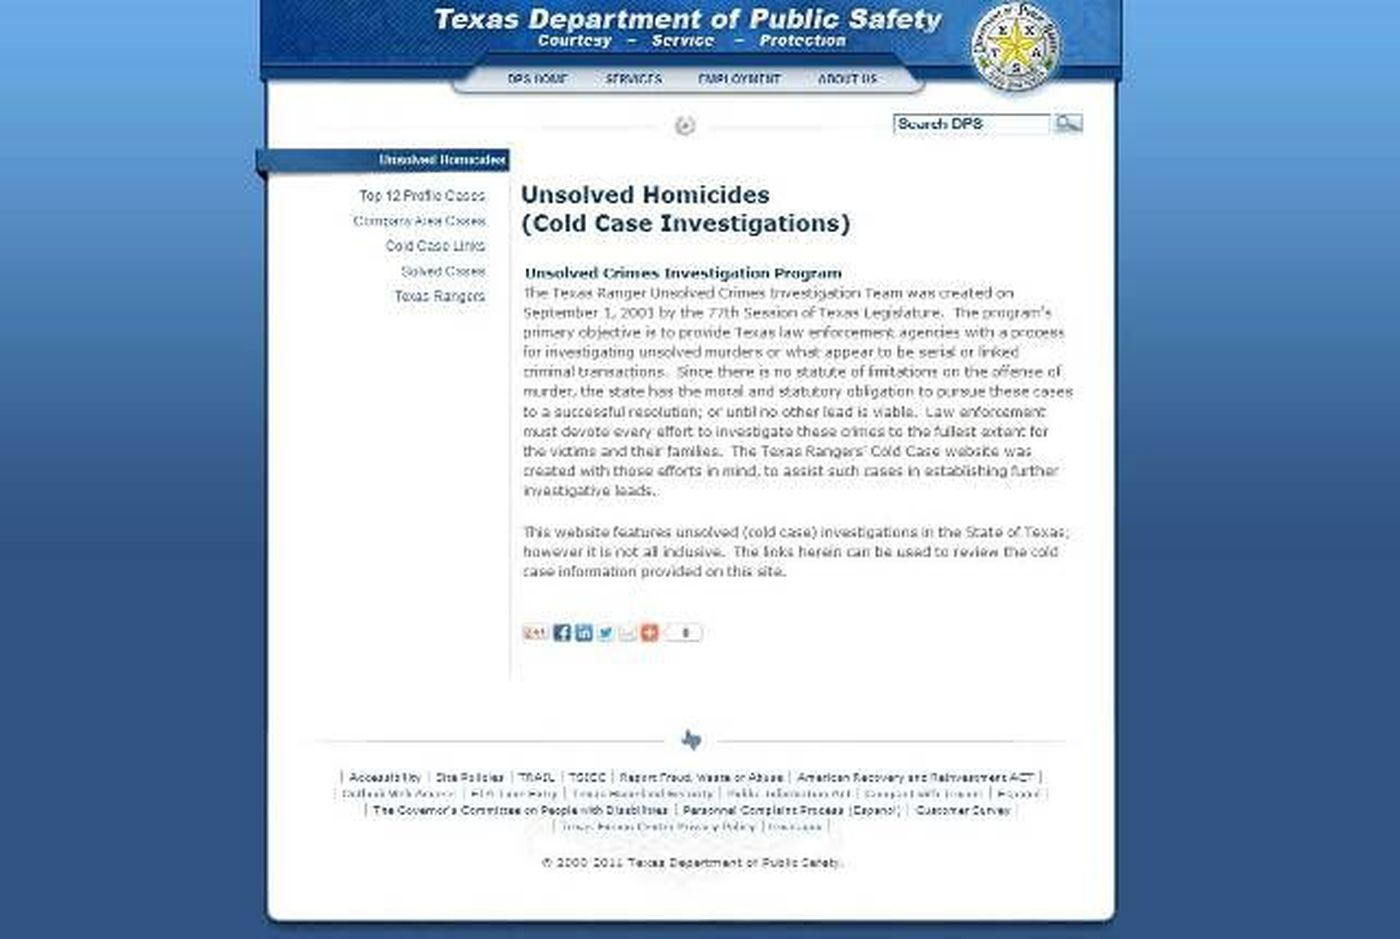 New DPS webpage highlights unsolved murders